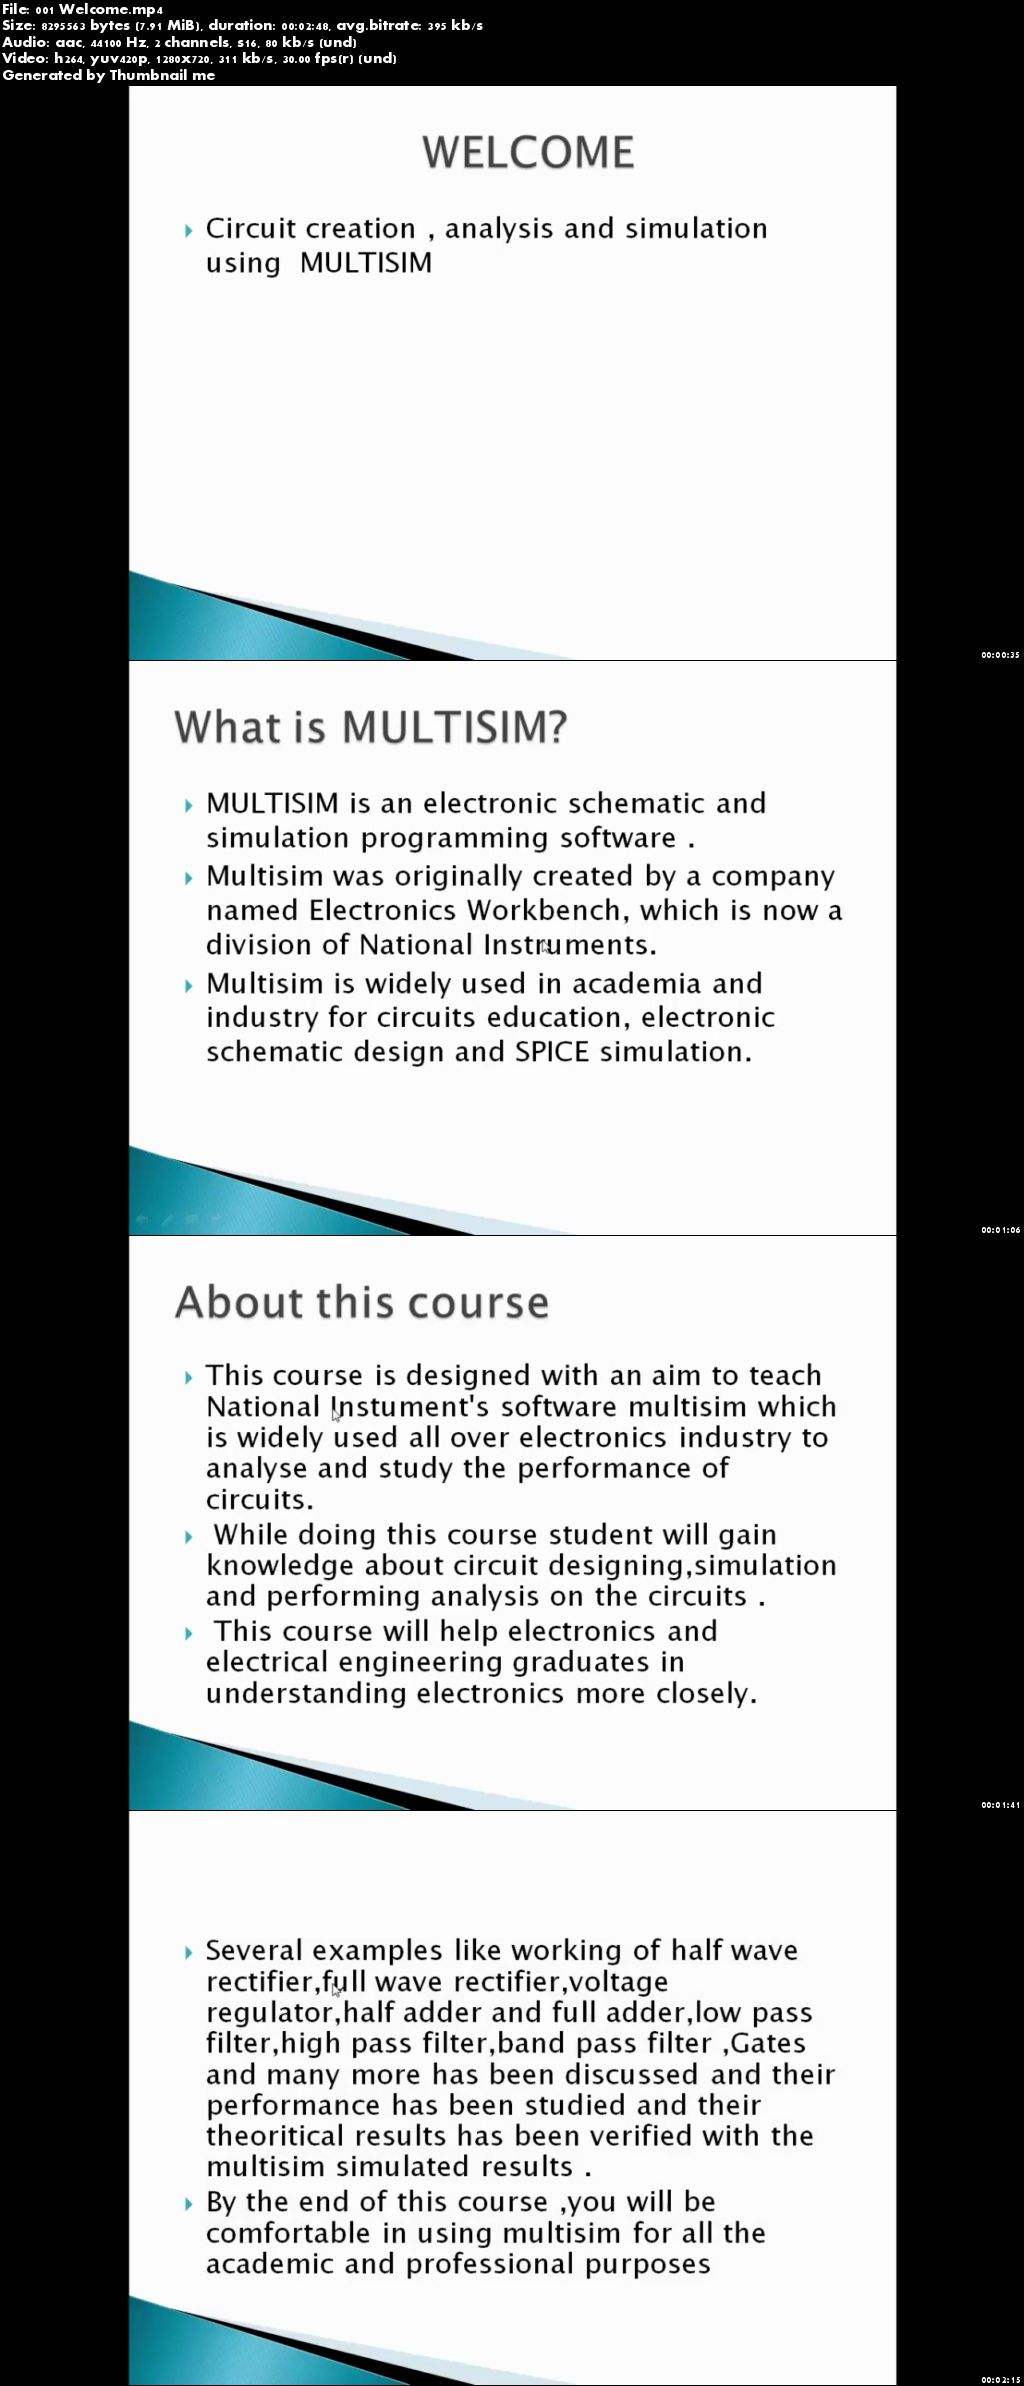 Circuit creation,analysis and simulation using MULTISIM